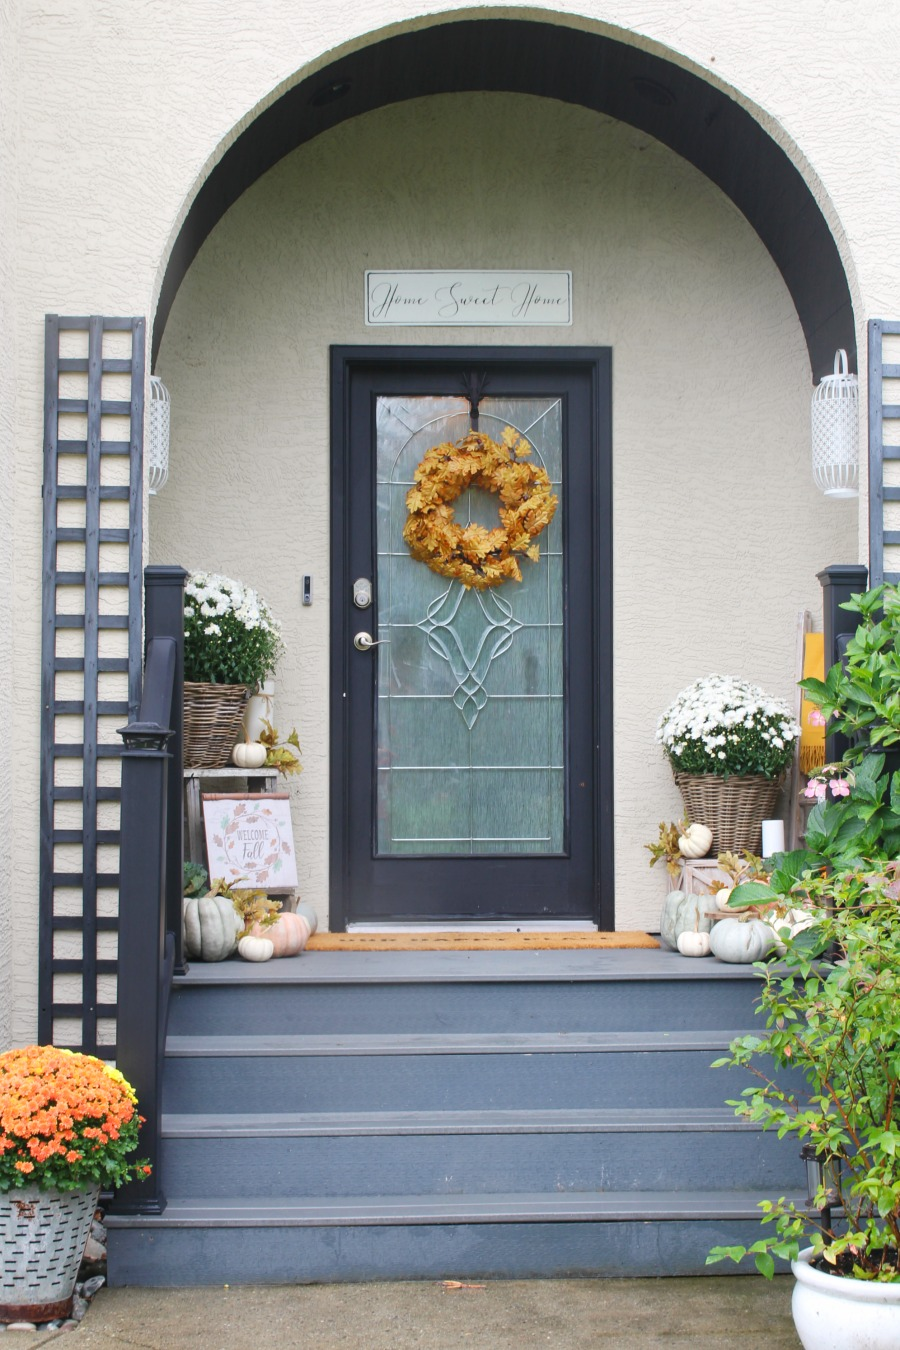 Farmhouse style fall front porch with mums and pumpkins.